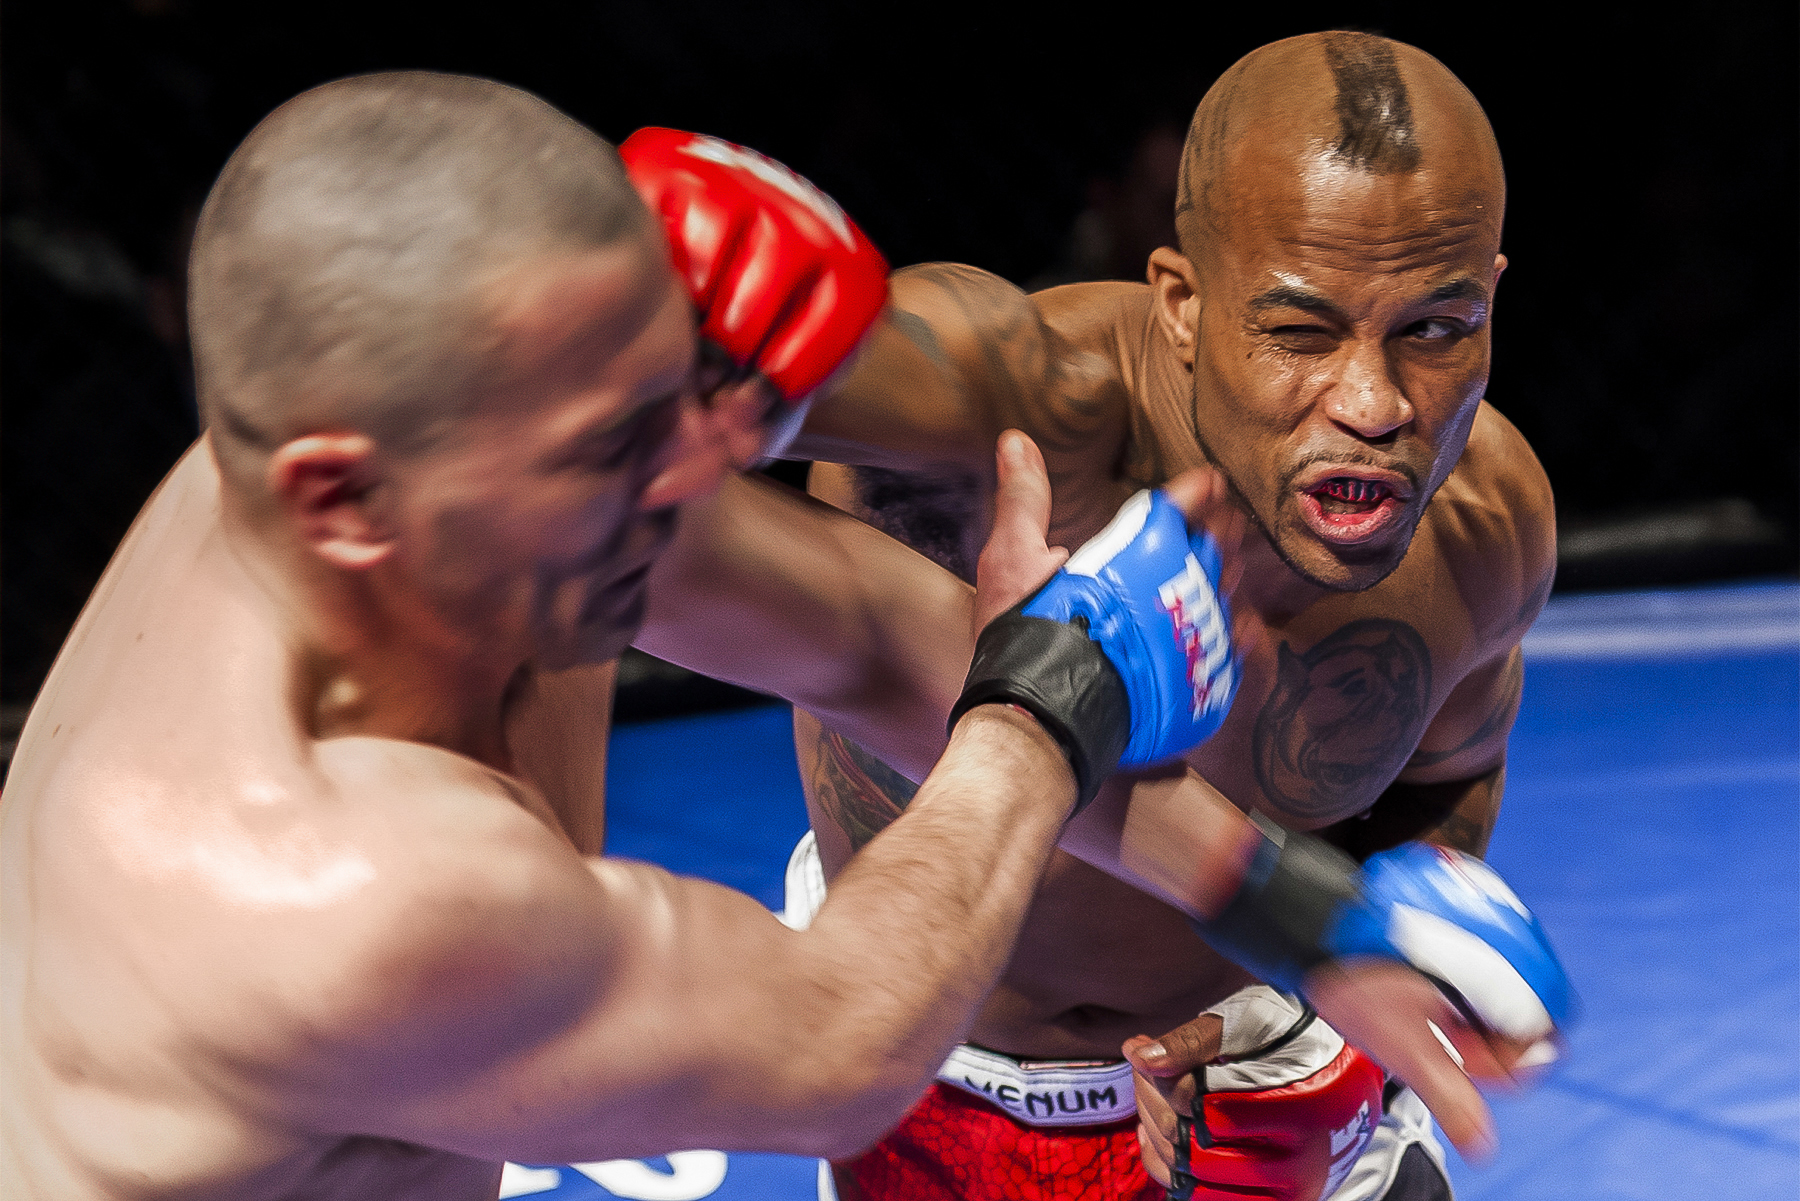 Amateur MMA fighter Talmadge Lytle strikes a blow against Raymond Gillies while in the cage at the LC Pavilion in Columbus, Ohio, during the Arnold Sports Festival on March 1, 2013.